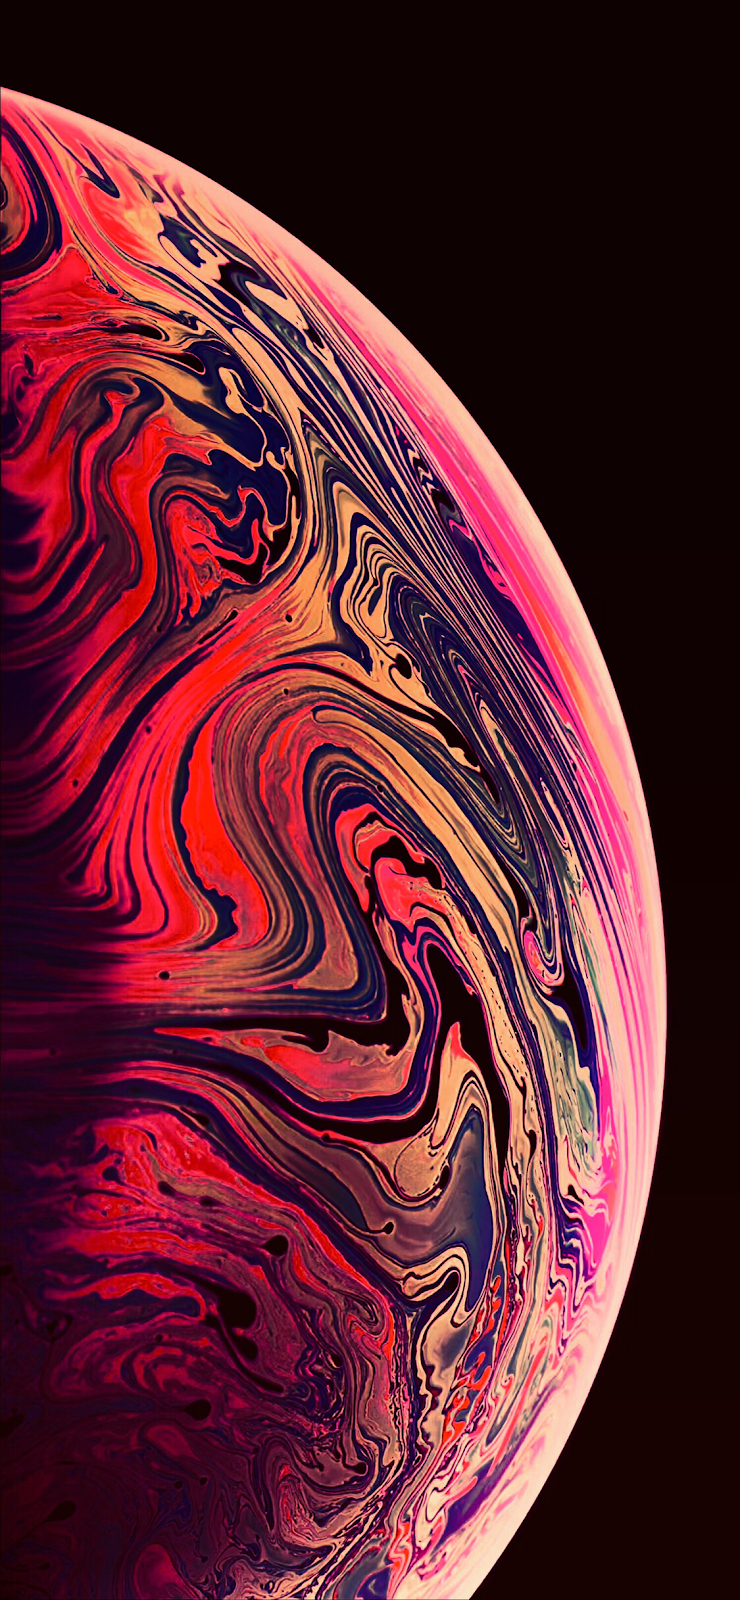 iPhone XS MAX Gradient Modd Wallpapers by AR72014 (2 variants) | Wall | Iphone wallpaper, Ios 11 ...